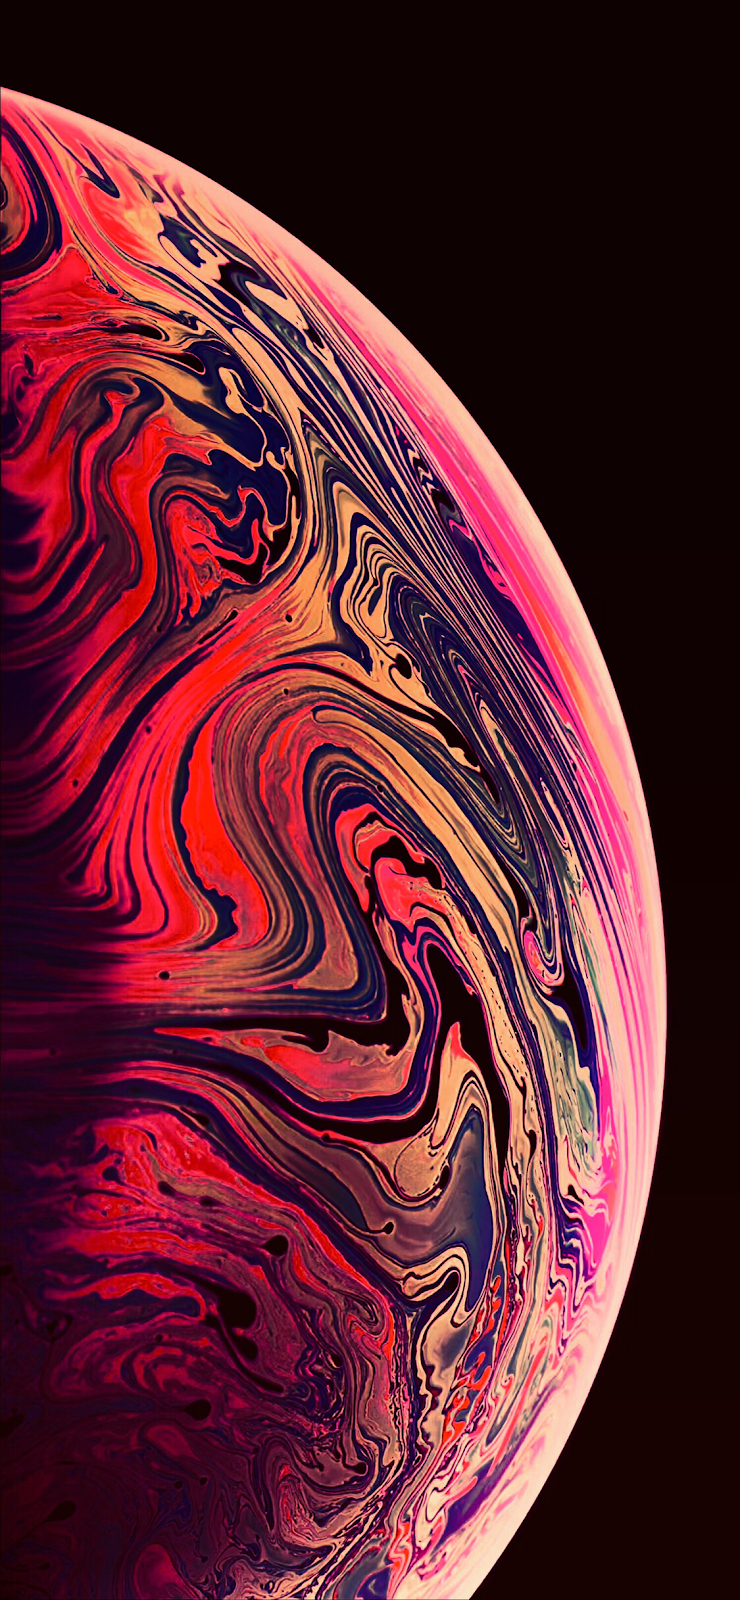 iPhone XS MAX Gradient Modd Wallpapers by AR72014 (2 variants) | Wall | Iphone wallpaper, Ios 11 ...